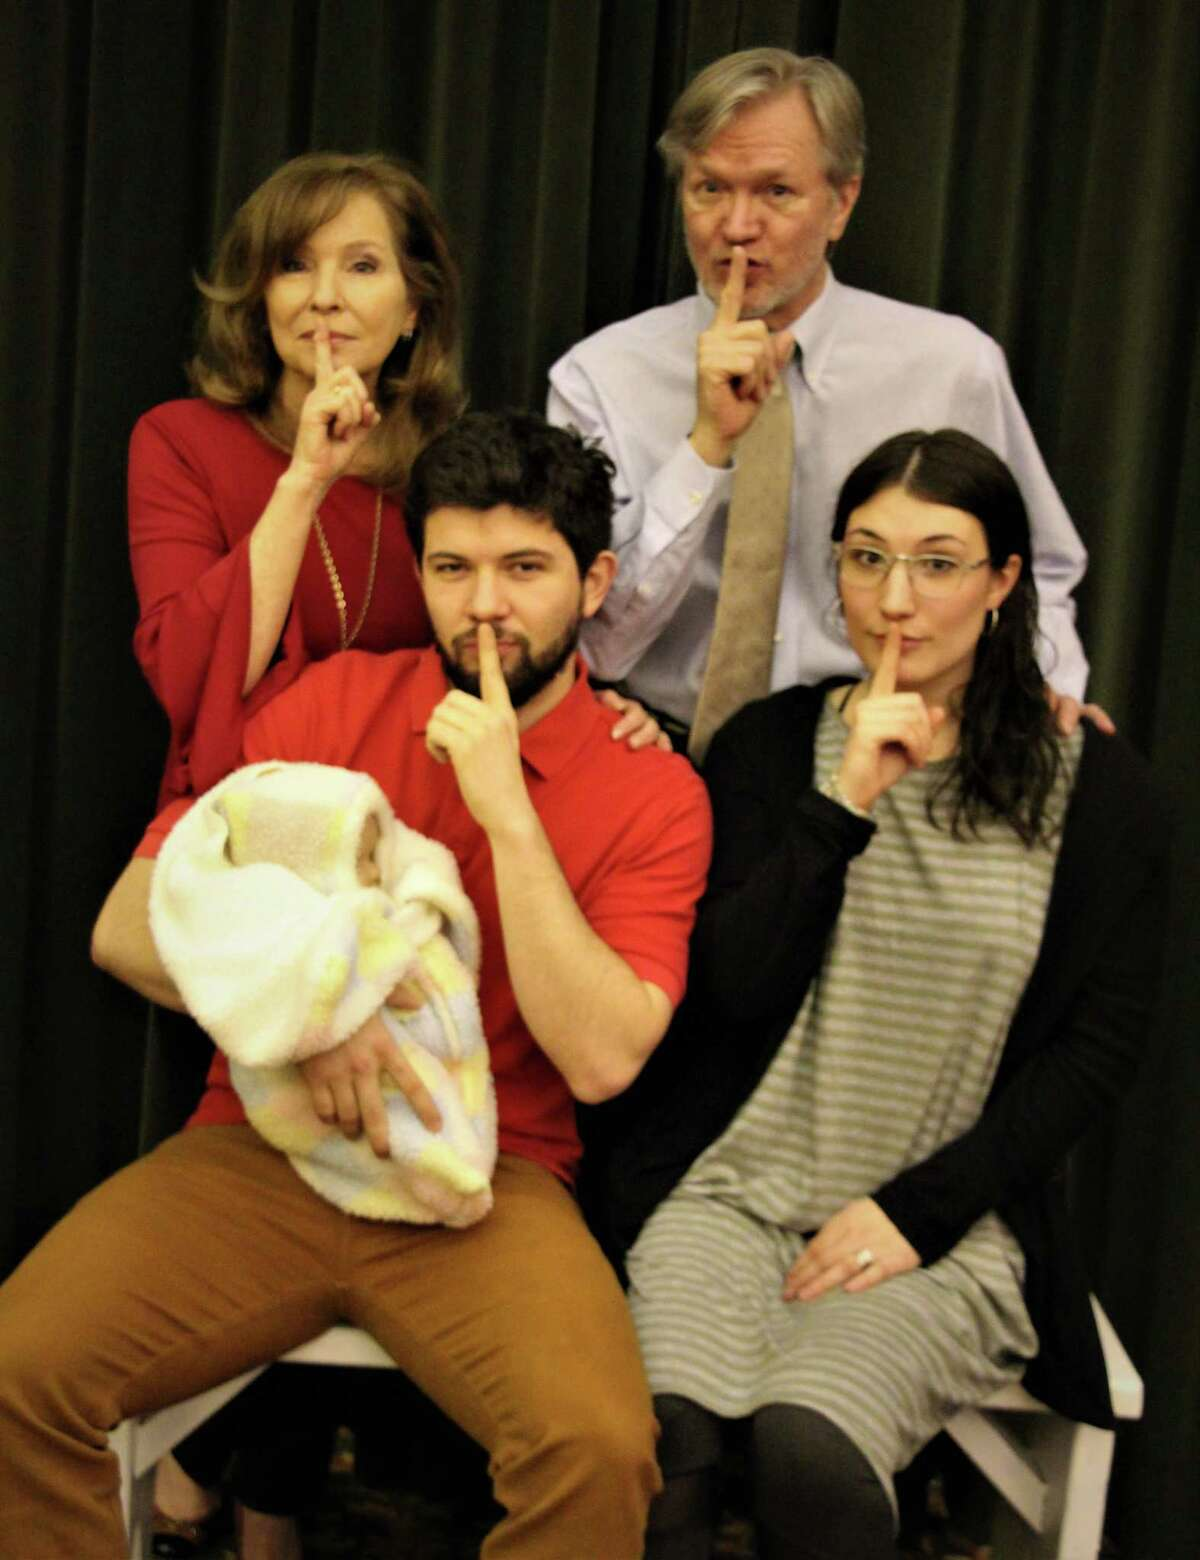 """Starring in """"Clever Little Lies"""" at the Square One Theatre in Stratford through March 17 are, clockwise from bottom left, Paulo Araujo, Peggy Nelson, Peter Wood and Josie Kulp."""